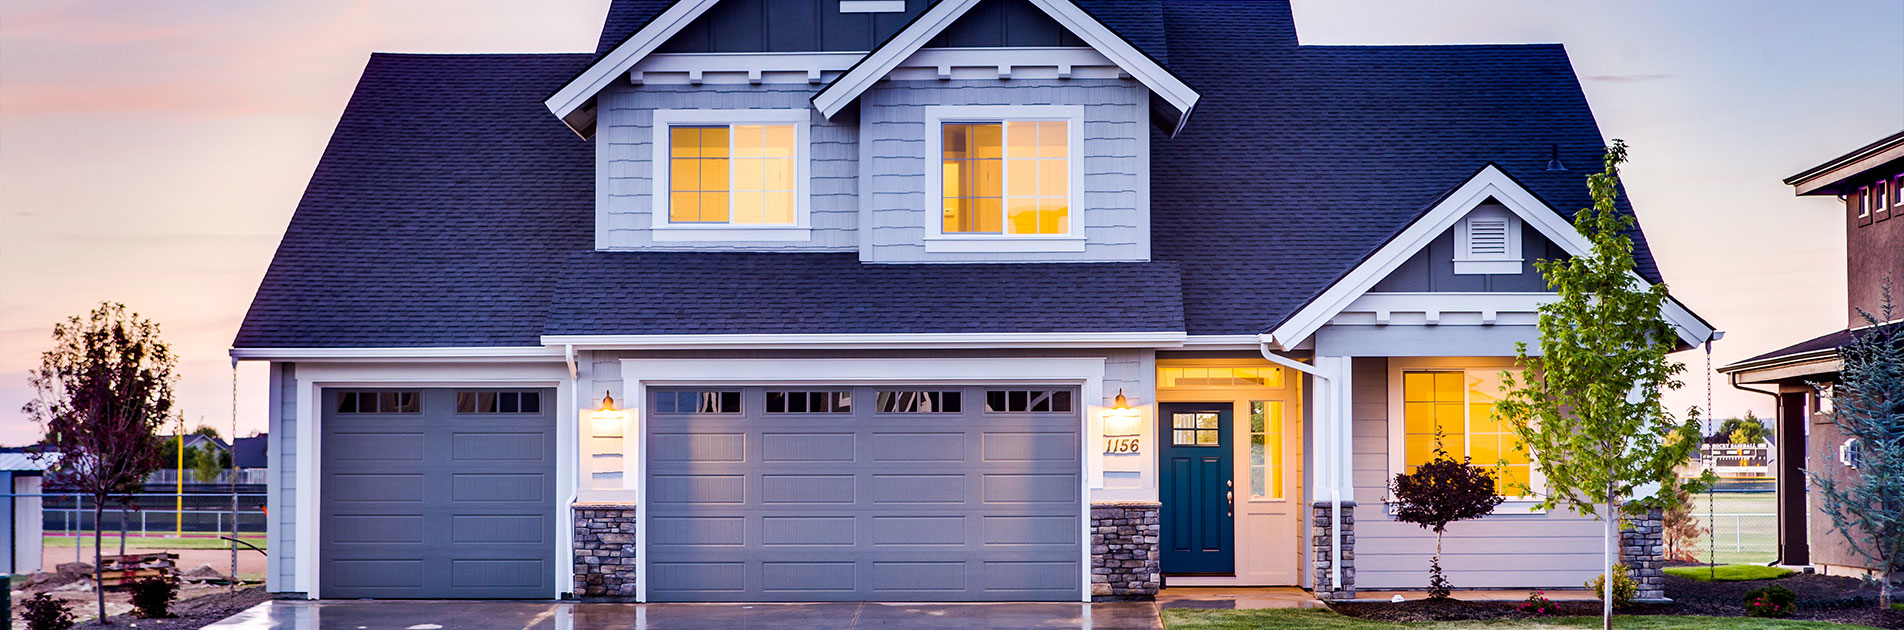 Global Garage Door Service Bellflower, CA 562-275-3367